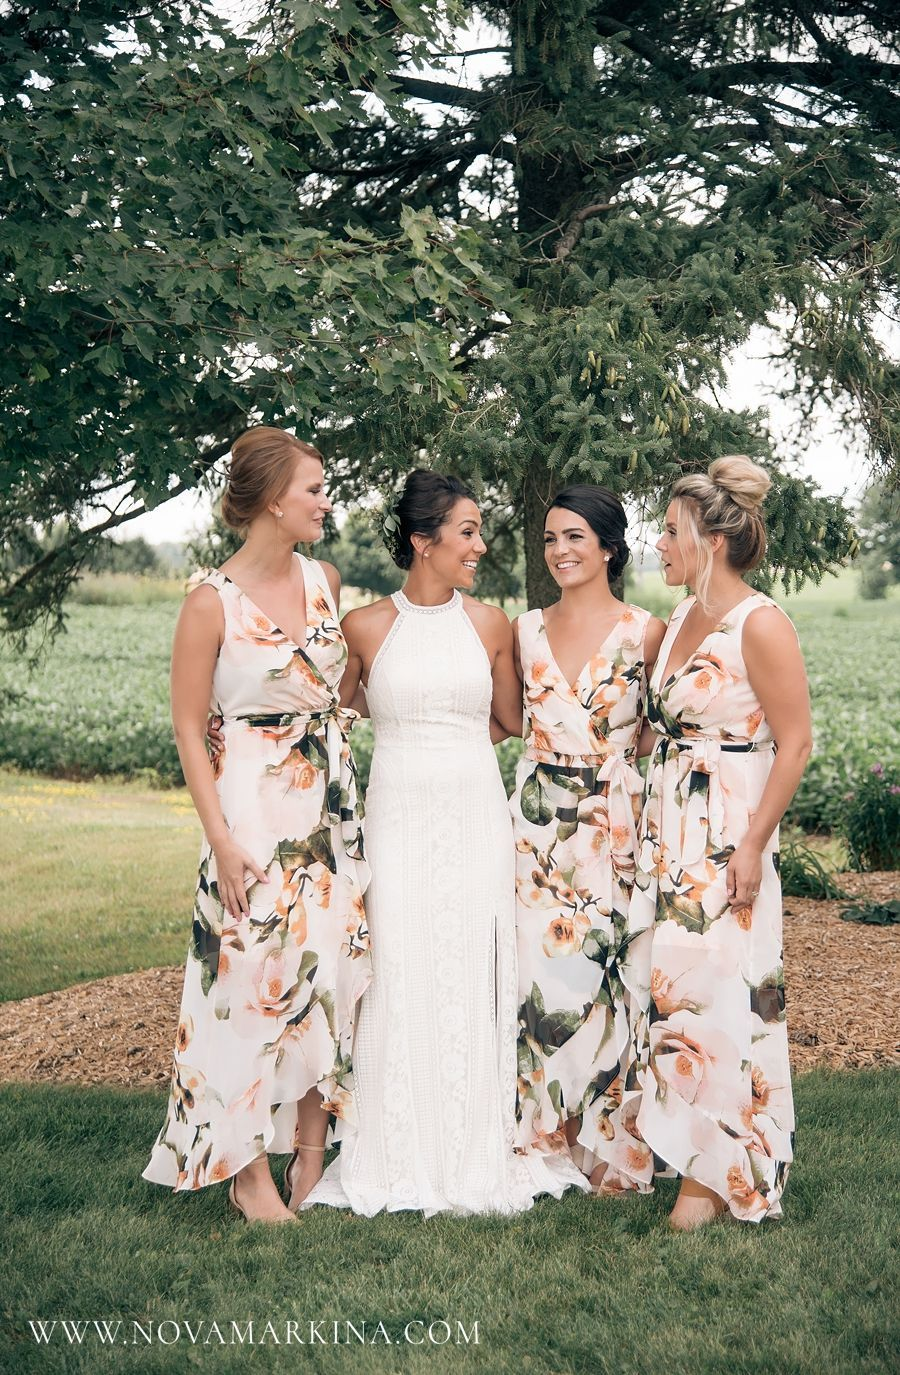 Summer Country Wedding Jacqueline Bryan Summer Bridesmaid Dresses Floral Bridesmaid Dresses Wedding Bridesmaid Dresses